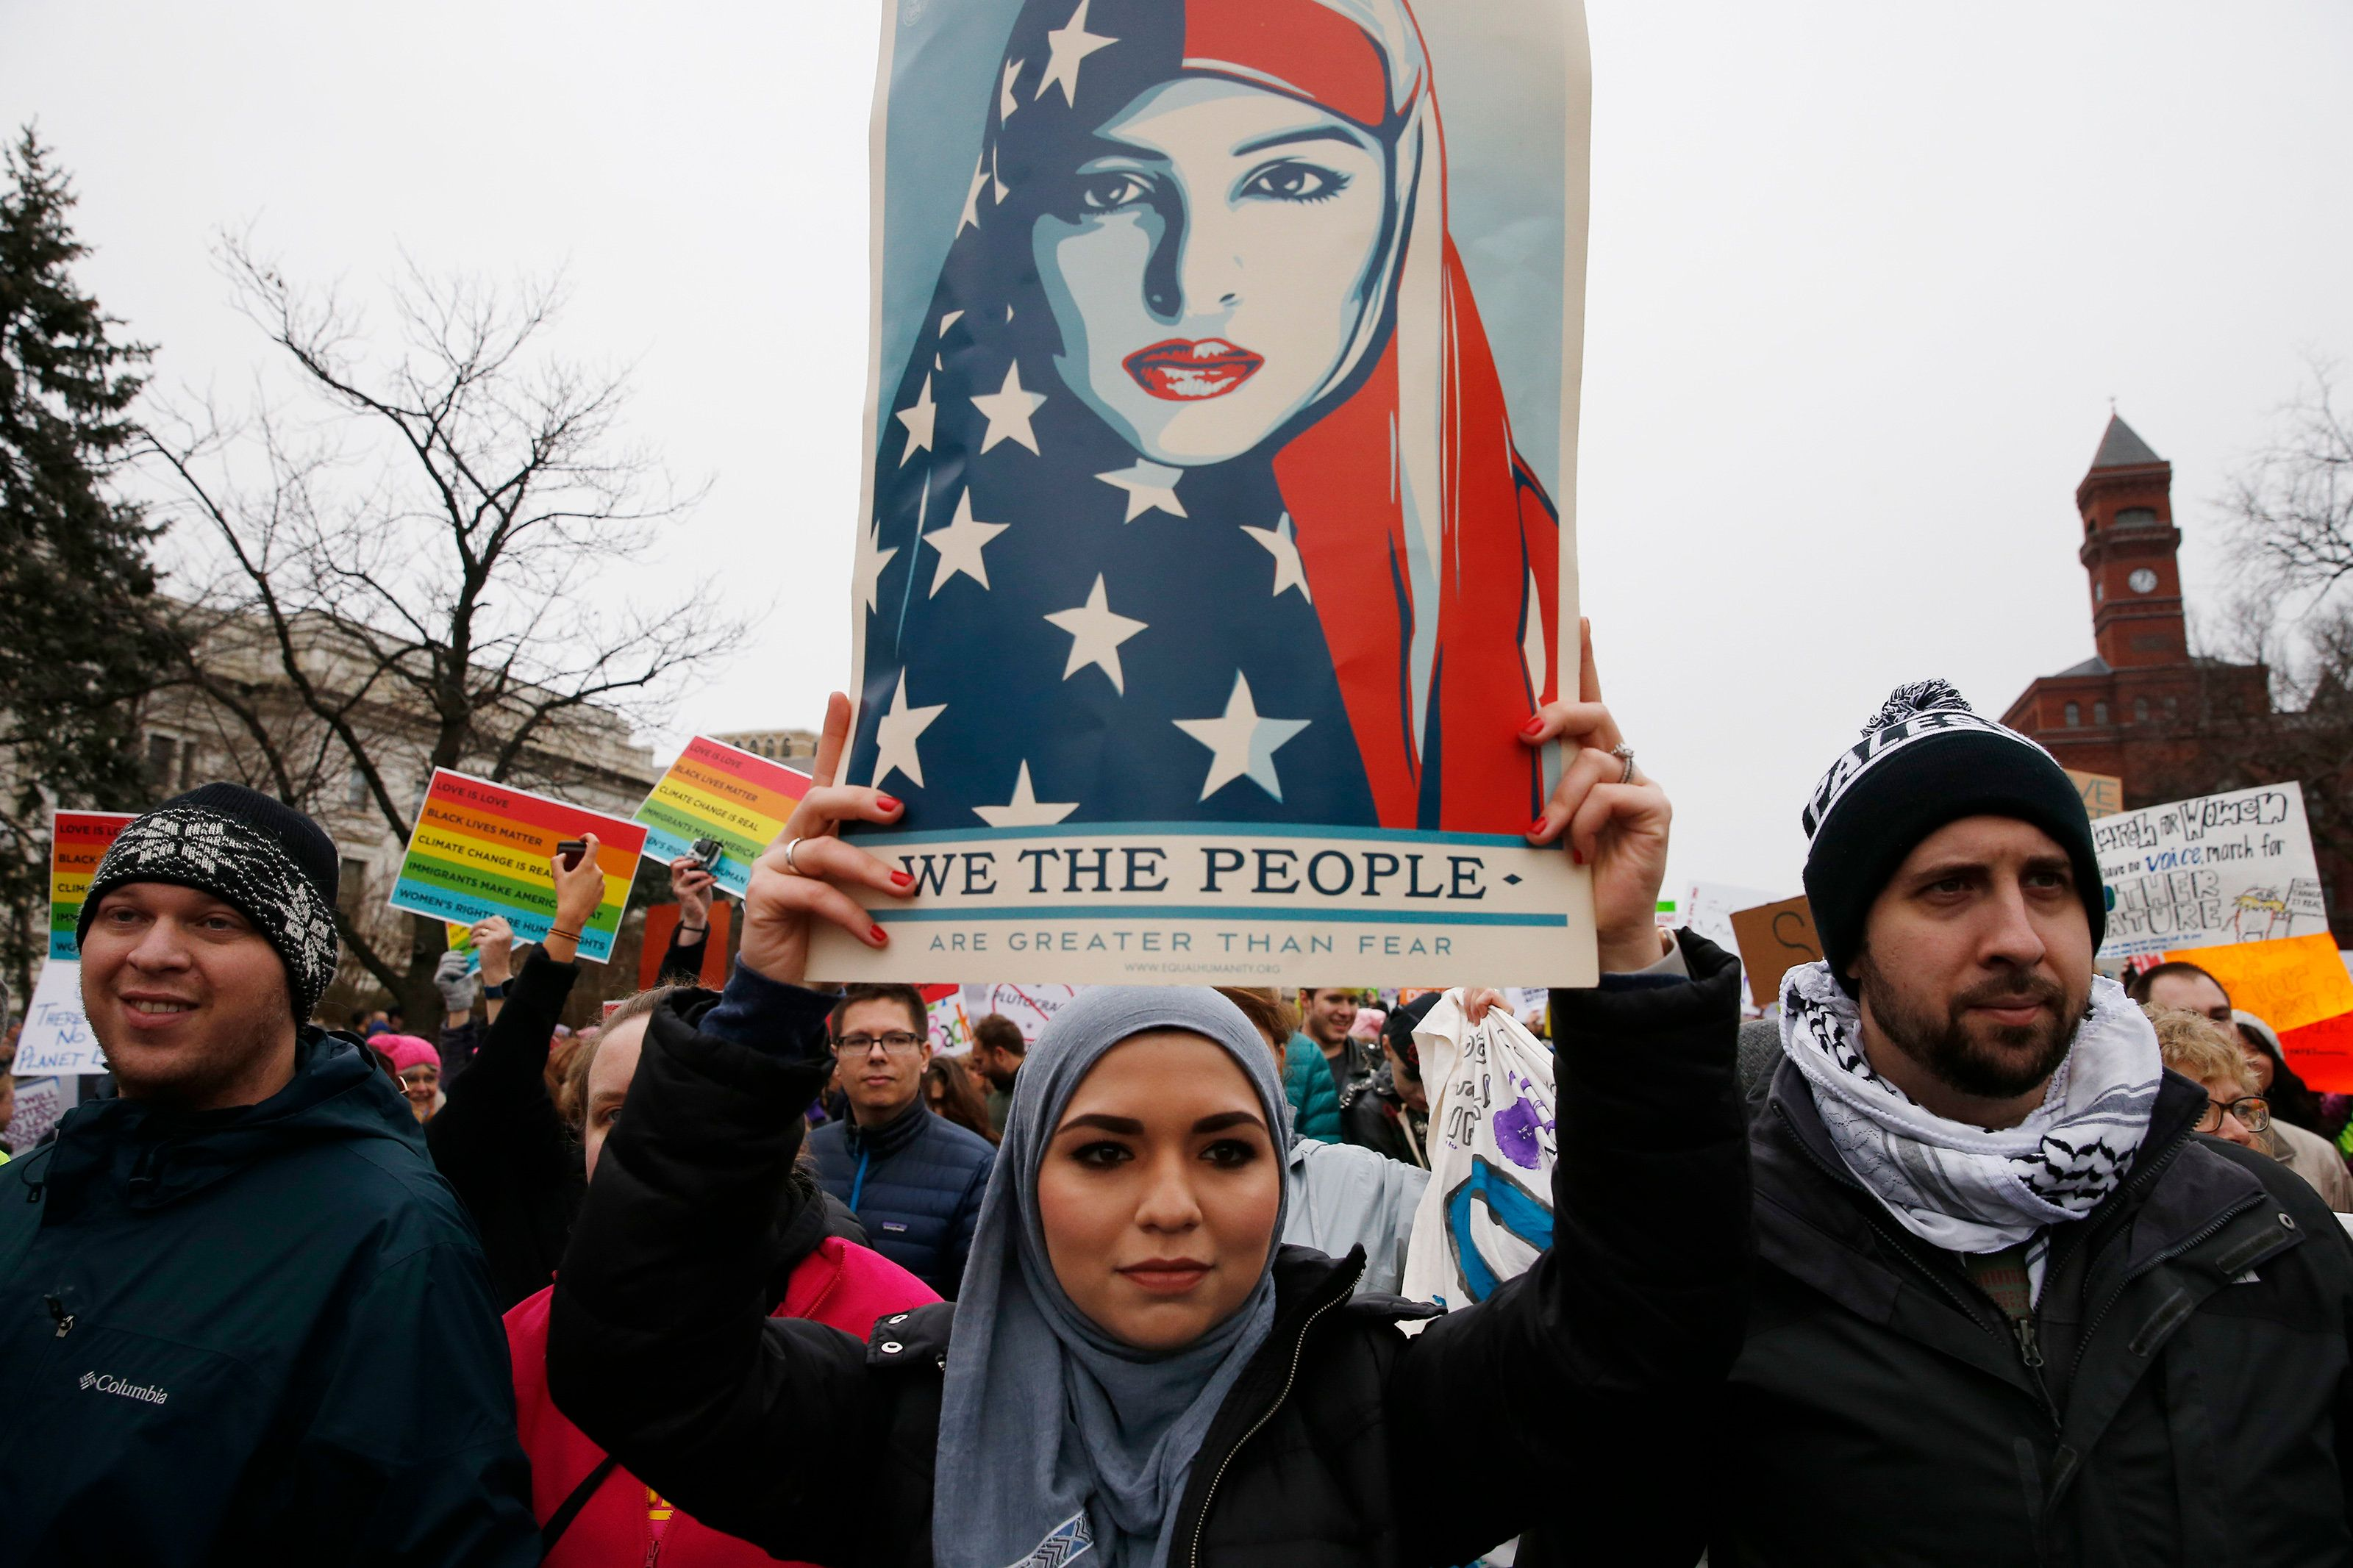 WASHINGTON, DC - JANUARY 21: A woman carries a 'We the people are greater than fear,' sign as she takes part in the Women's March on Washington, Jan. 21, 2017. (Photo by Jessica Rinaldi/The Boston Globe via Getty Images)